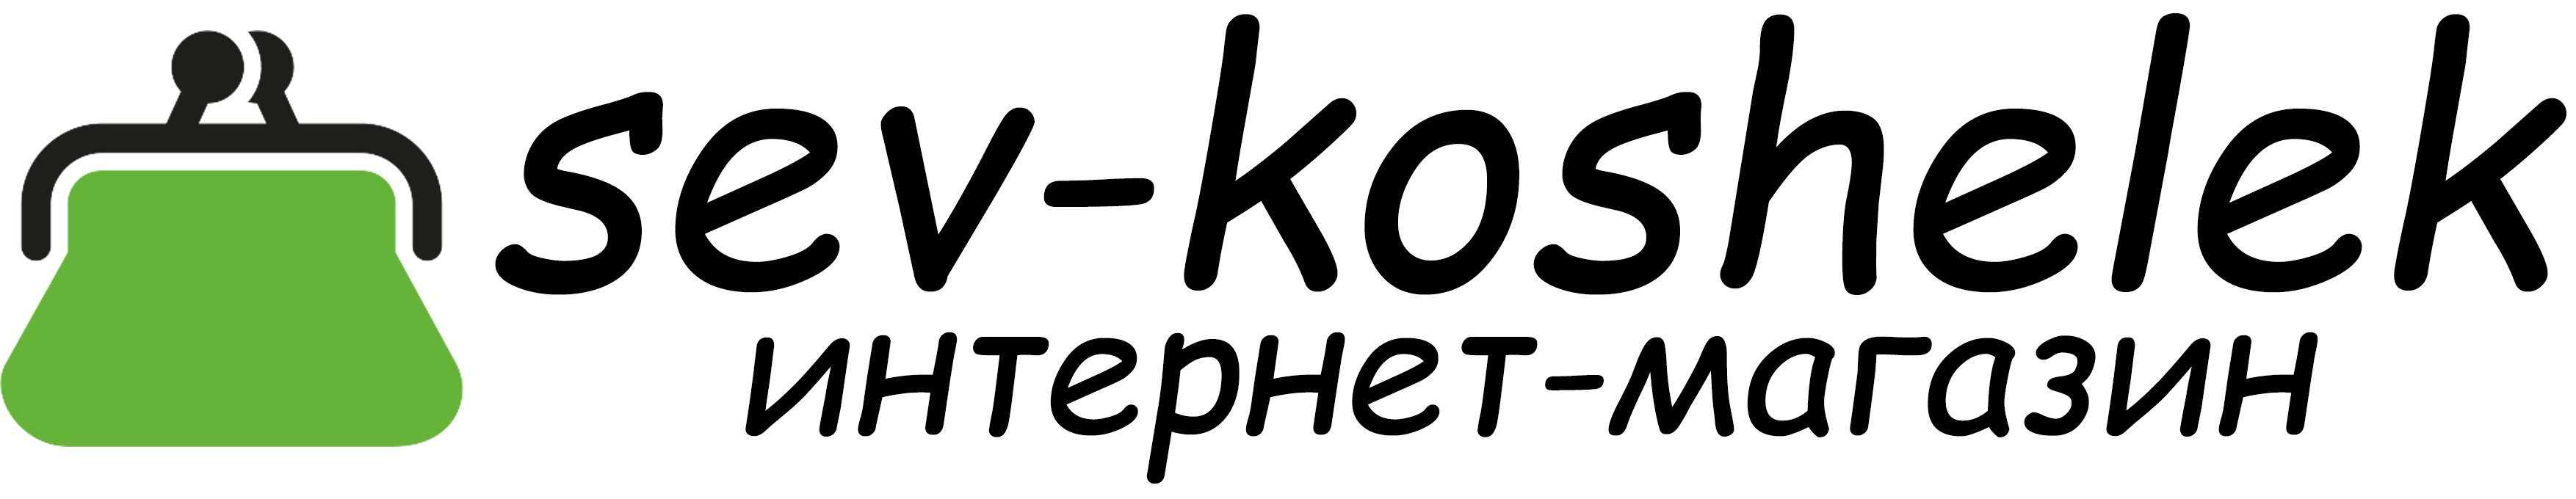 https://sev-koshelek.ru